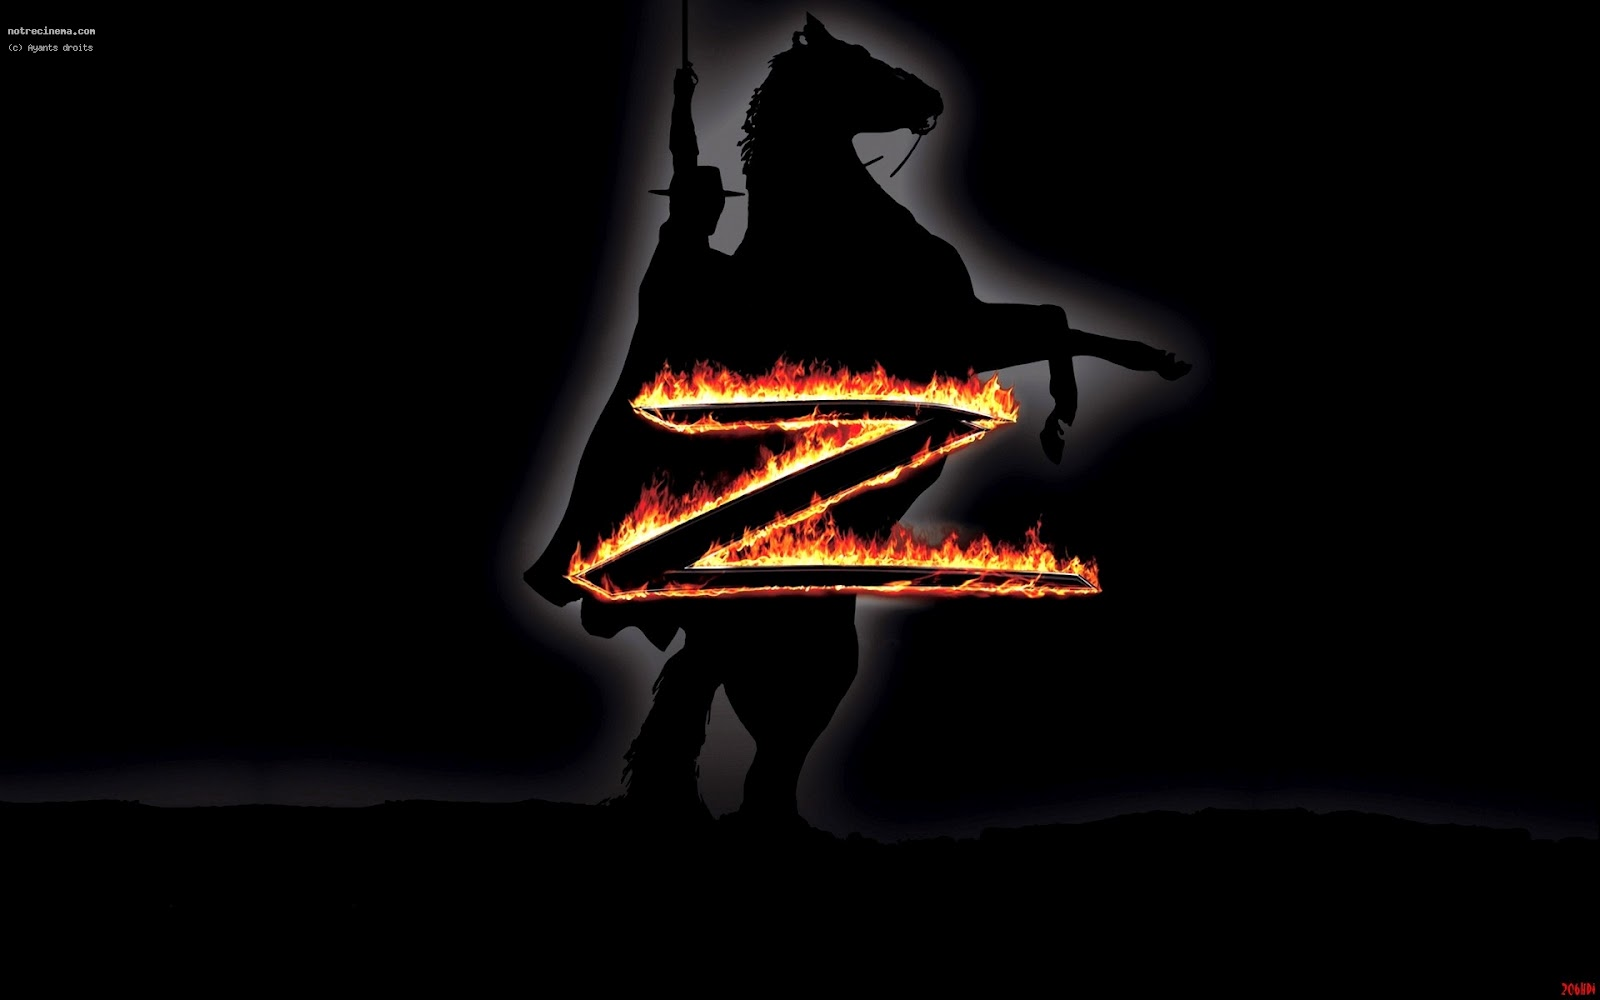 z for zorro Zorro the fox of cunning and creed zorro, zorro, zorro he makes the sign of the z zorro, zorro, zorro, zorro, zorro, zorro sound of hoof beats.